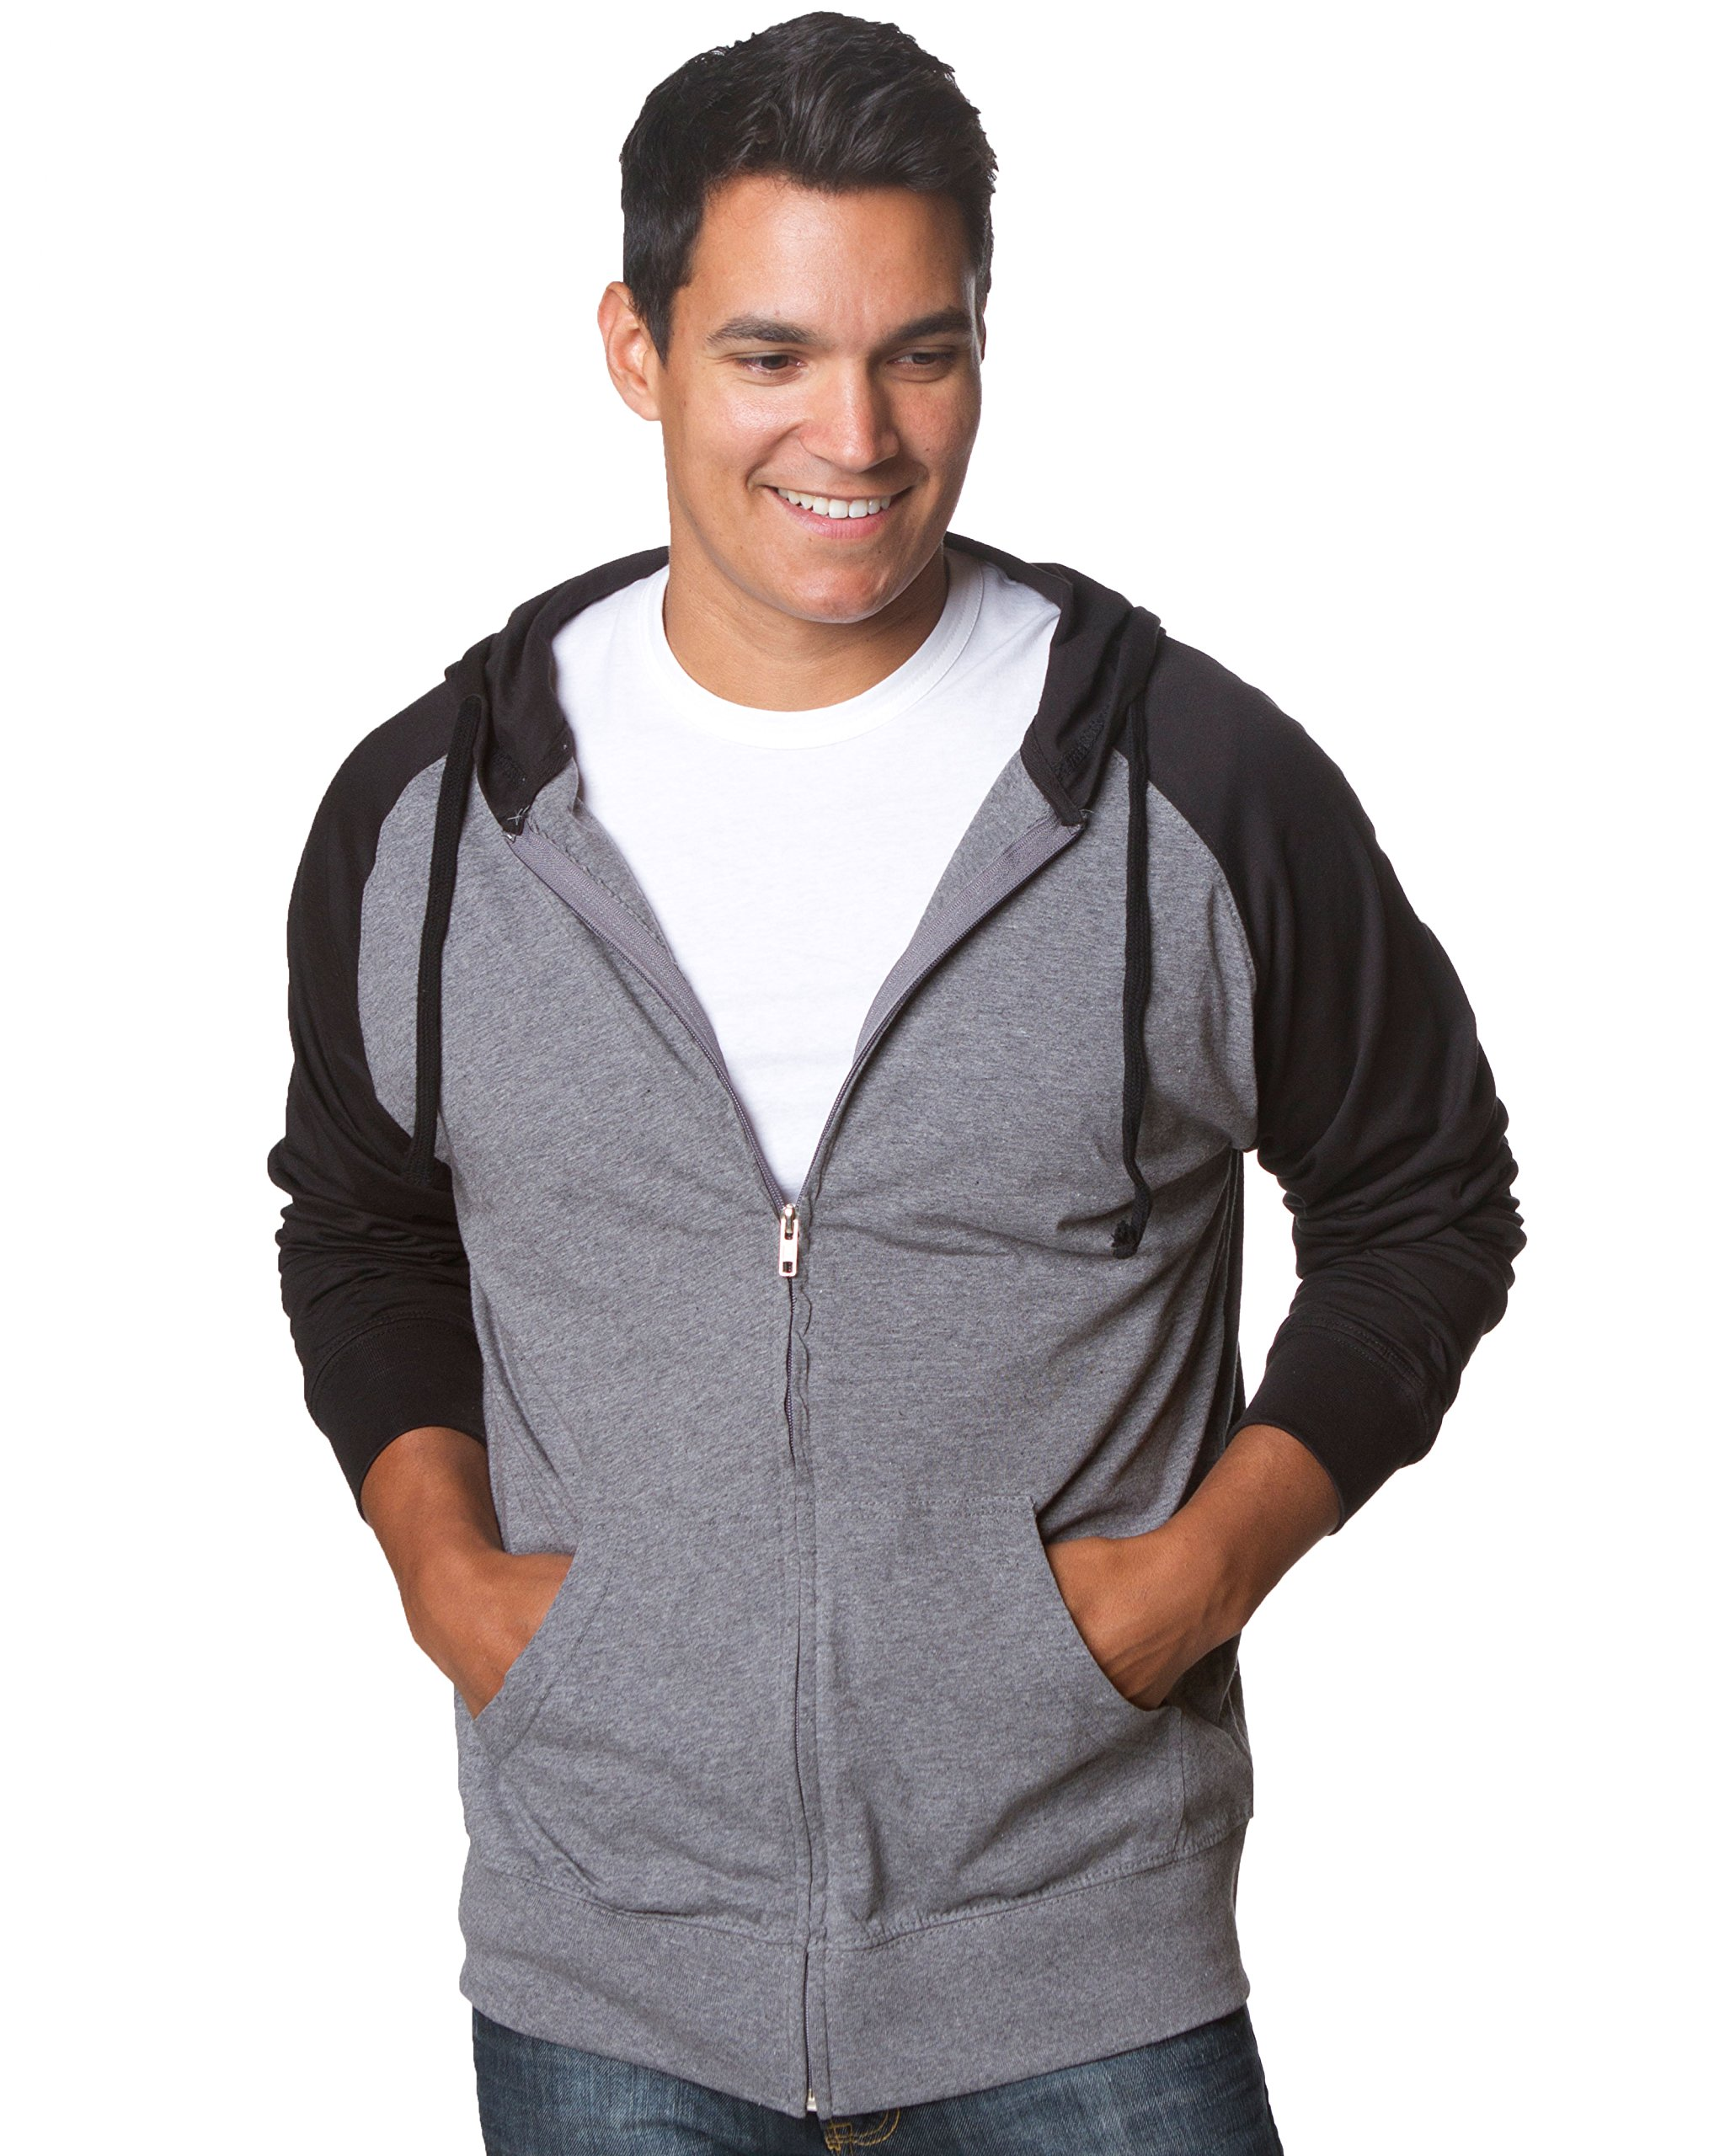 Extra Small Grey and Black Longsleeve Lightweight Hoodie Jersey T Shirt Material by Global Blank